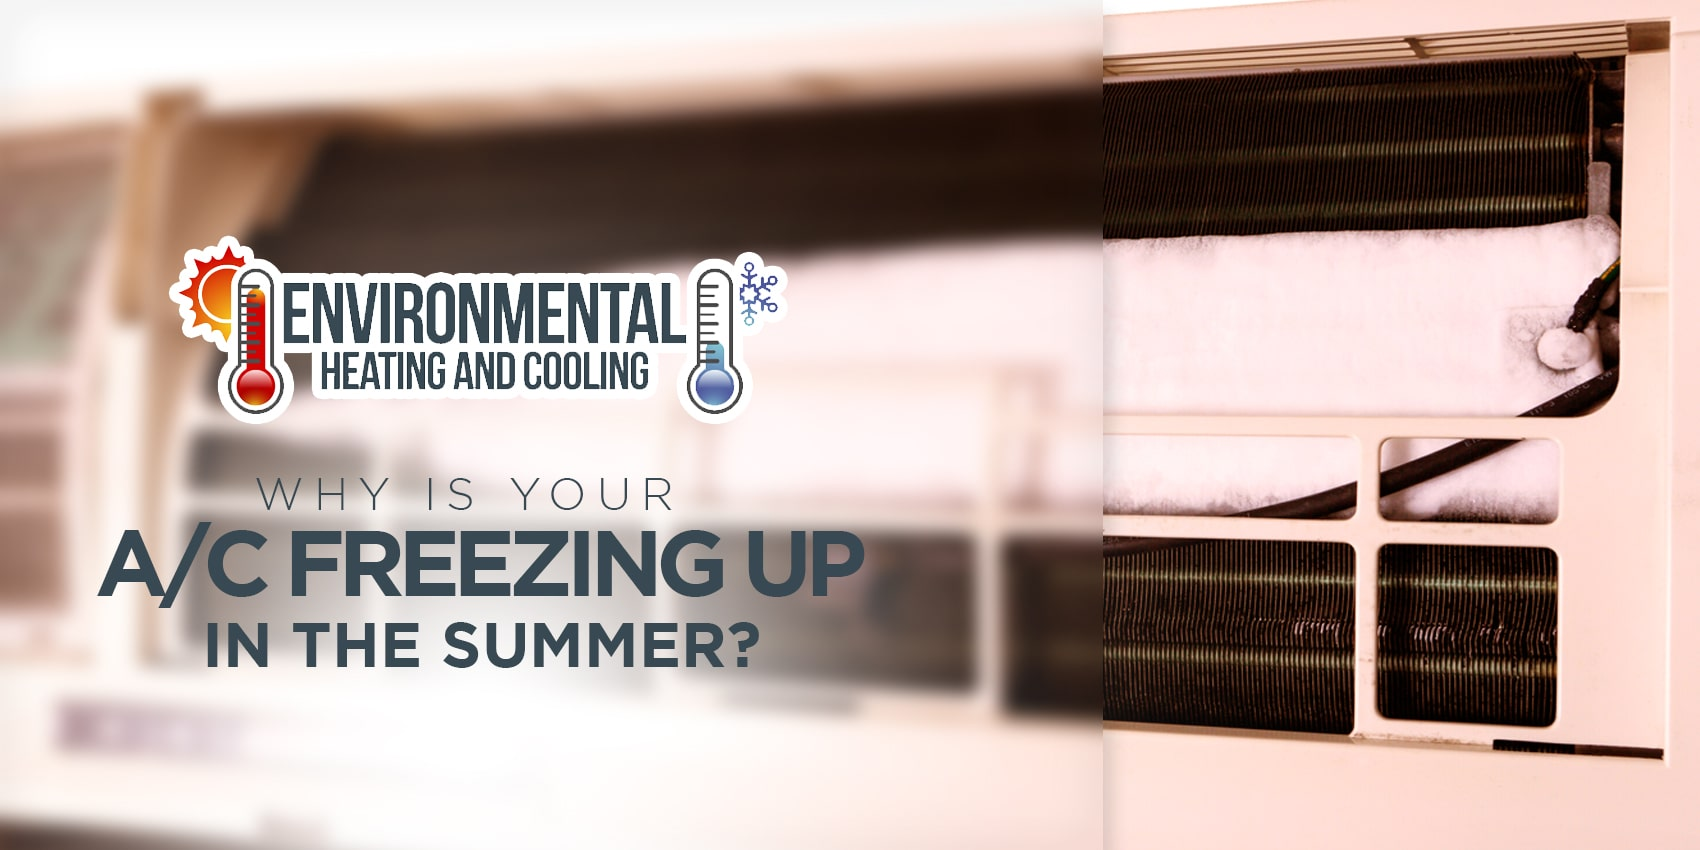 Why Is Your A/C Freezing Up in the Summer?